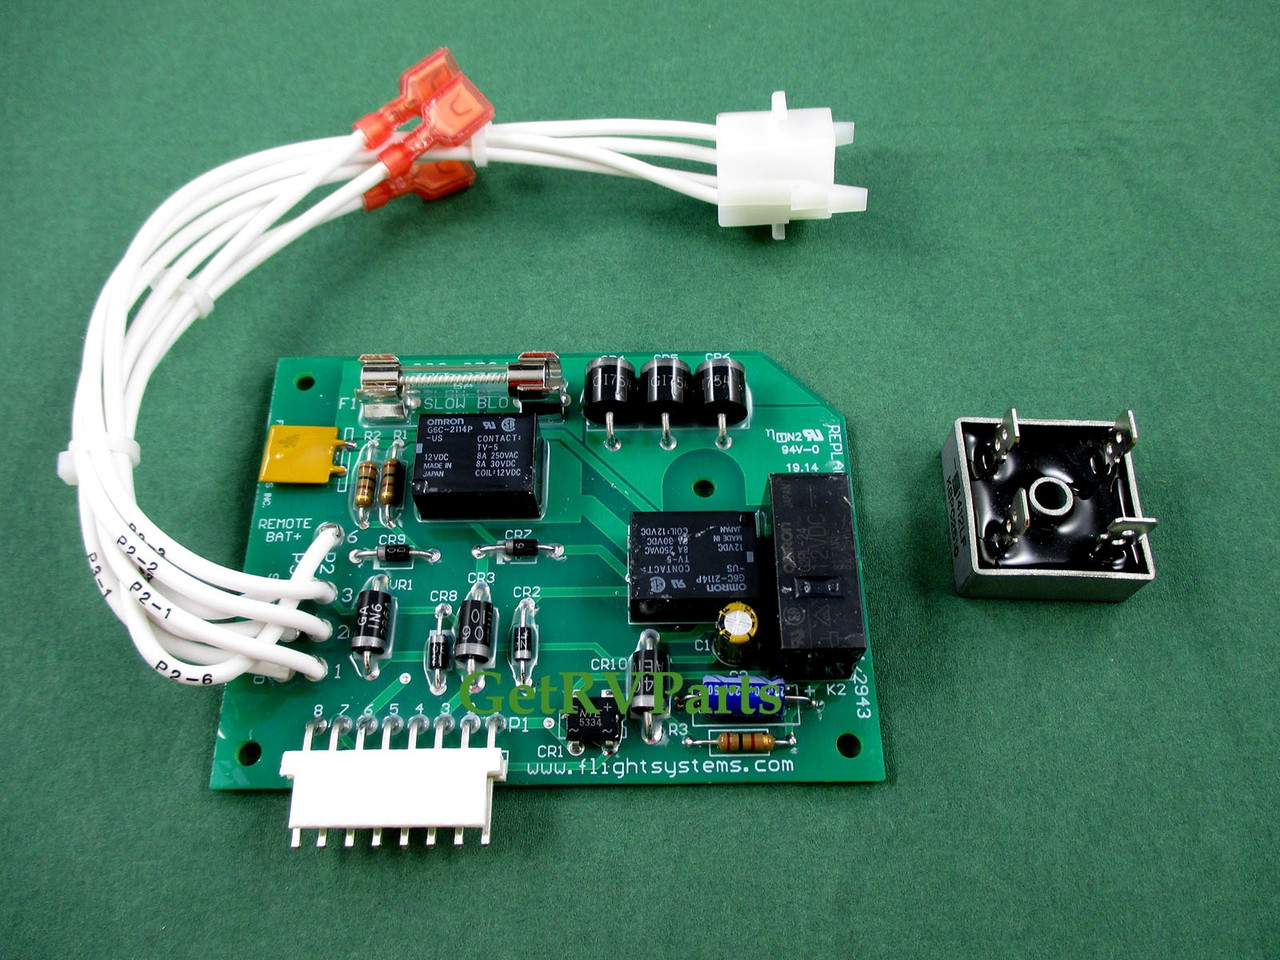 Onan Aftermarket 300-2784-01 Generator Circuit Board By Flight on portable generator schematic, home generator schematic, onan microquiet 4000 carburetor, generator wiring schematic, brushless generator schematic, cummins generator schematic, ge generator schematic, generac generator schematic, power generator schematic, westinghouse generator schematic, inverter generator schematic, onan diesel generators, diesel generator schematic, kohler generator schematic, power inverter schematic, dayton generator schematic, homelite generator schematic, onan portable generators, winco generator schematic, cruise control schematic,